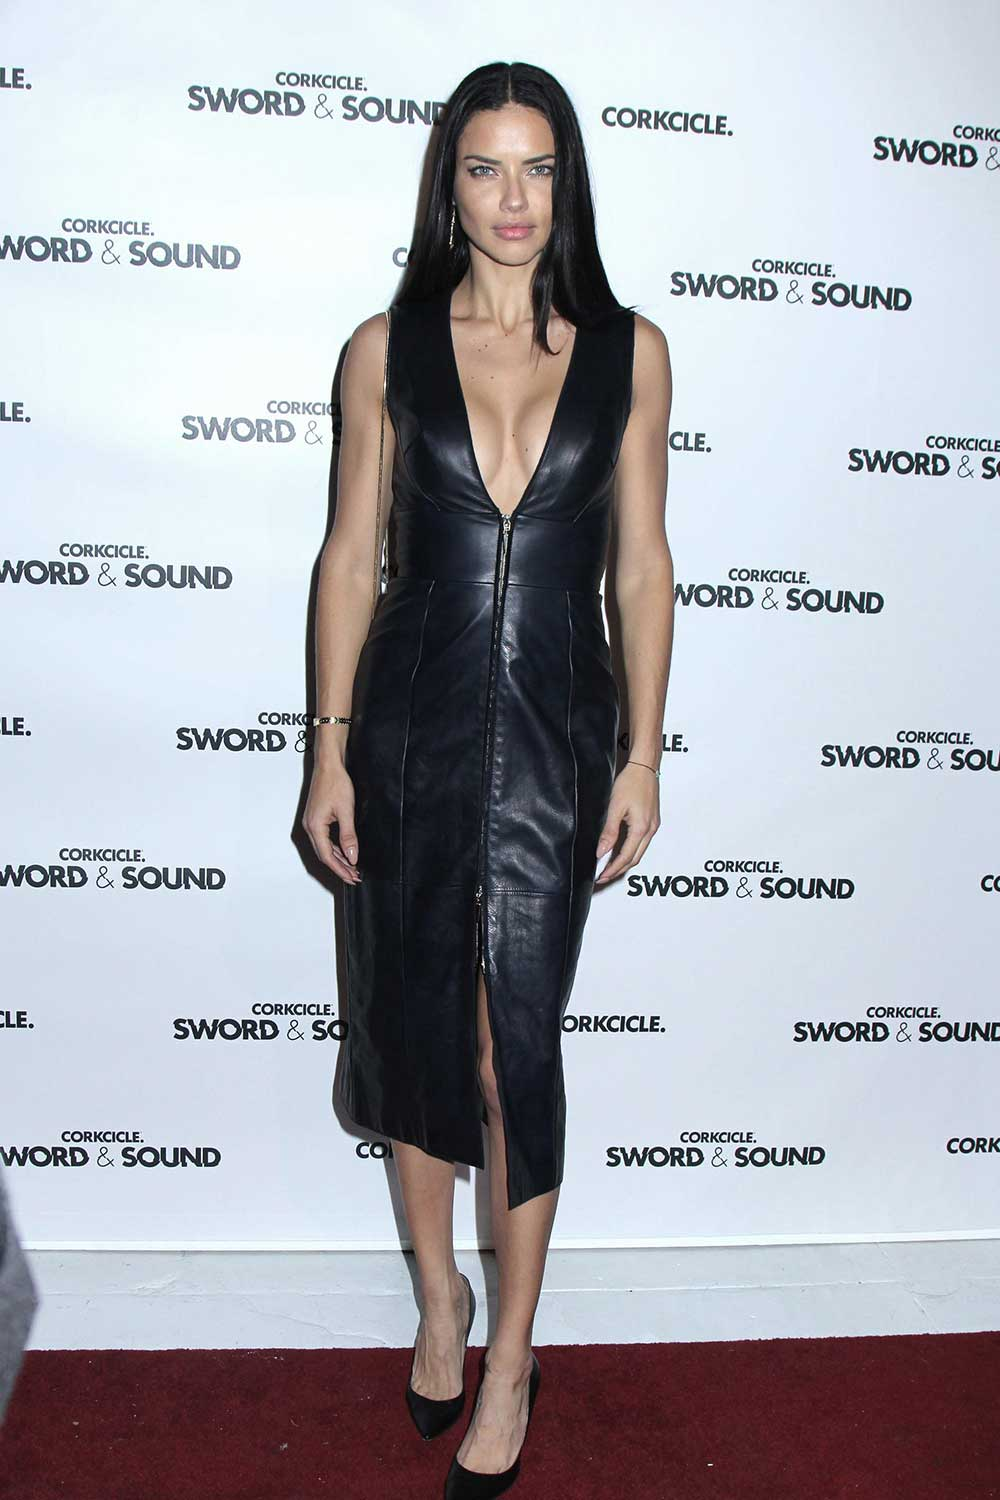 Adriana Lima at Corkcircle Hosting Sword & Sound